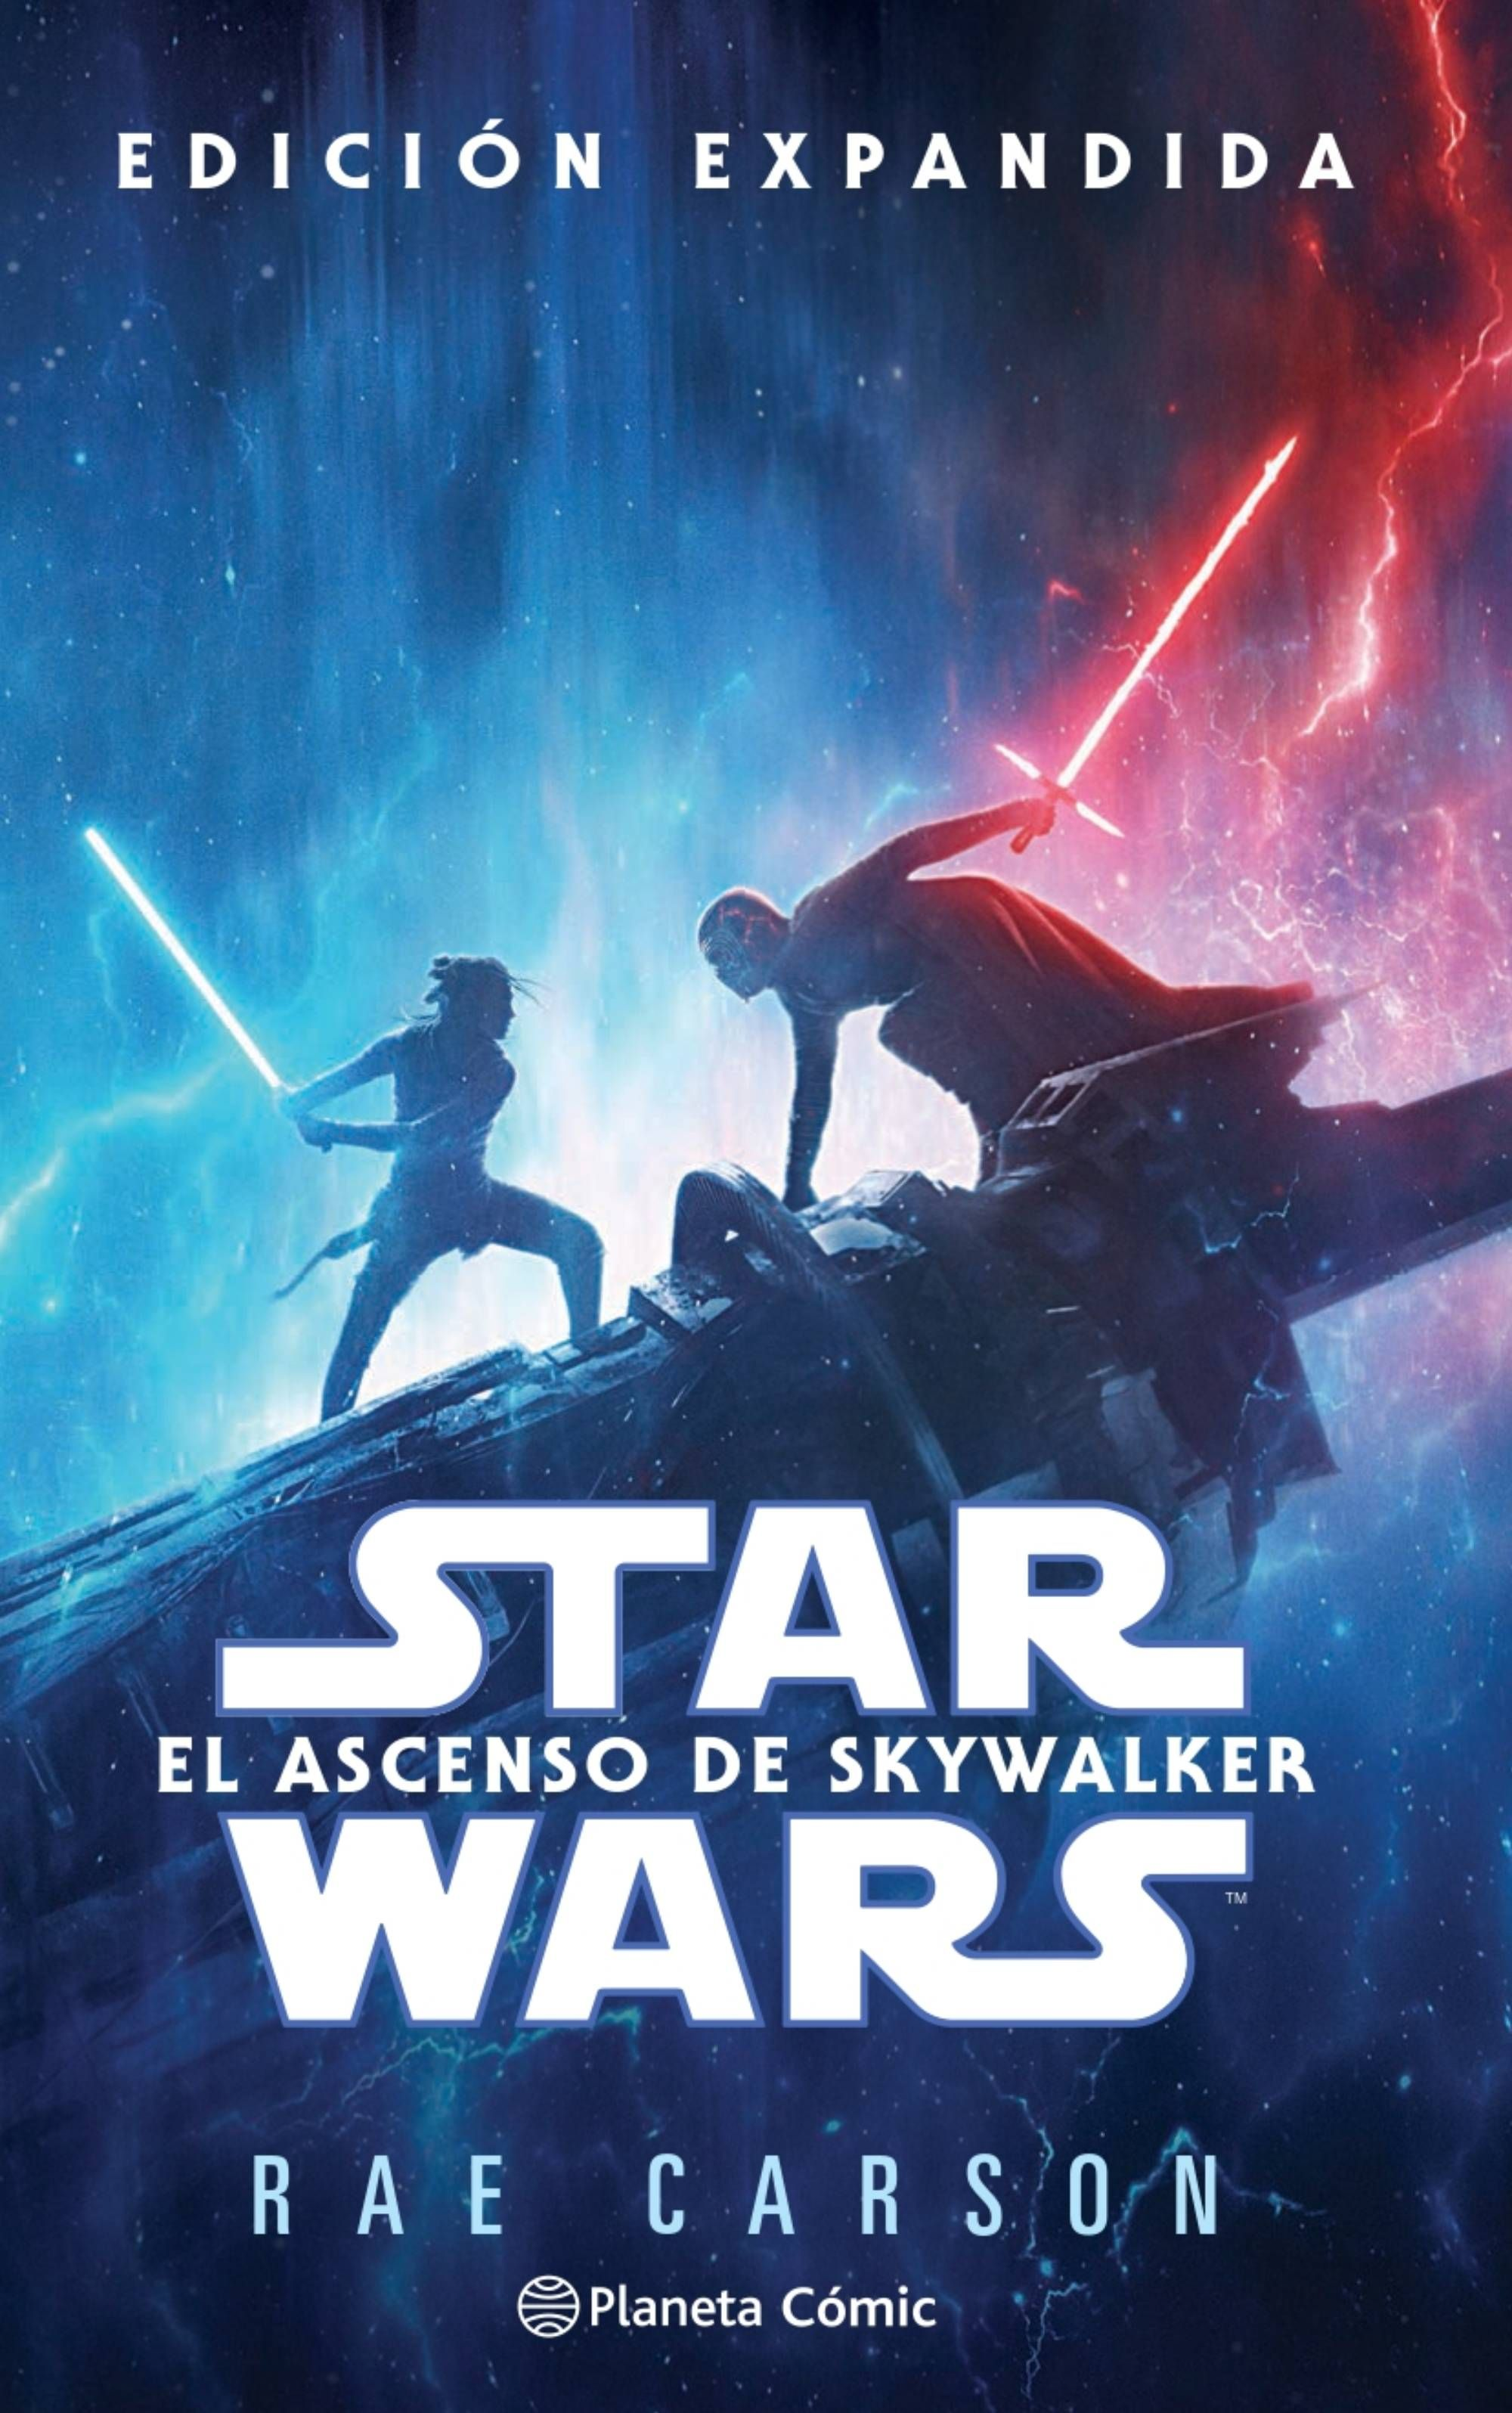 Star Wars 9: The Fan Service Menace - Página 18 Portada_star-wars-episodio-ix-el-ascenso-de-skywalker-novela_rae-carson_202007141505